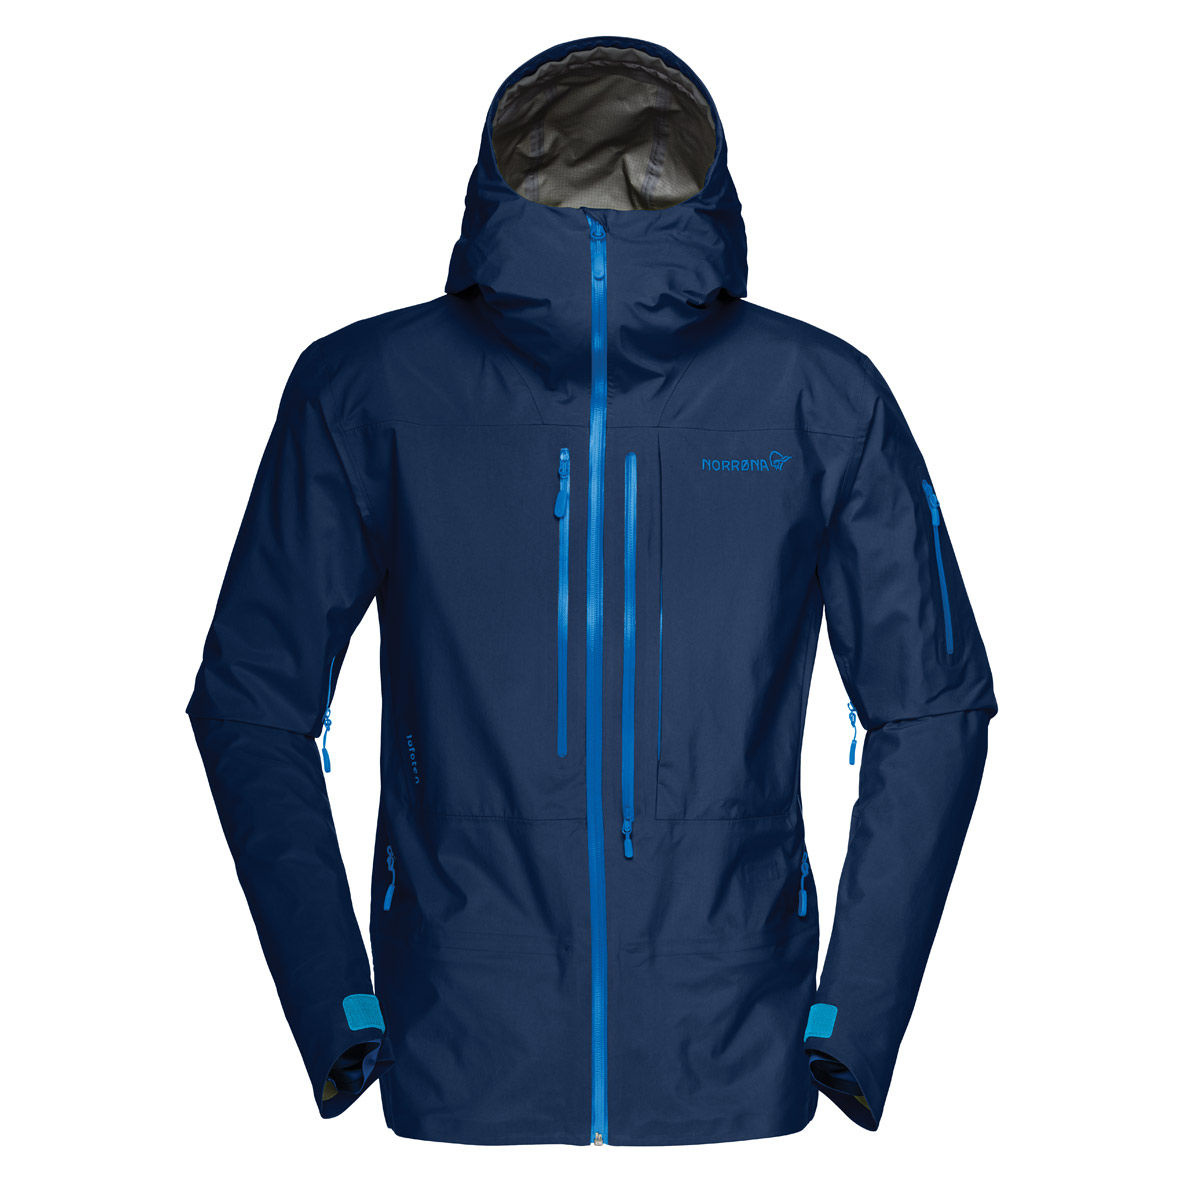 Norrona Lofoten Gore-Tex Pro Jacket - Indigo Night Blue